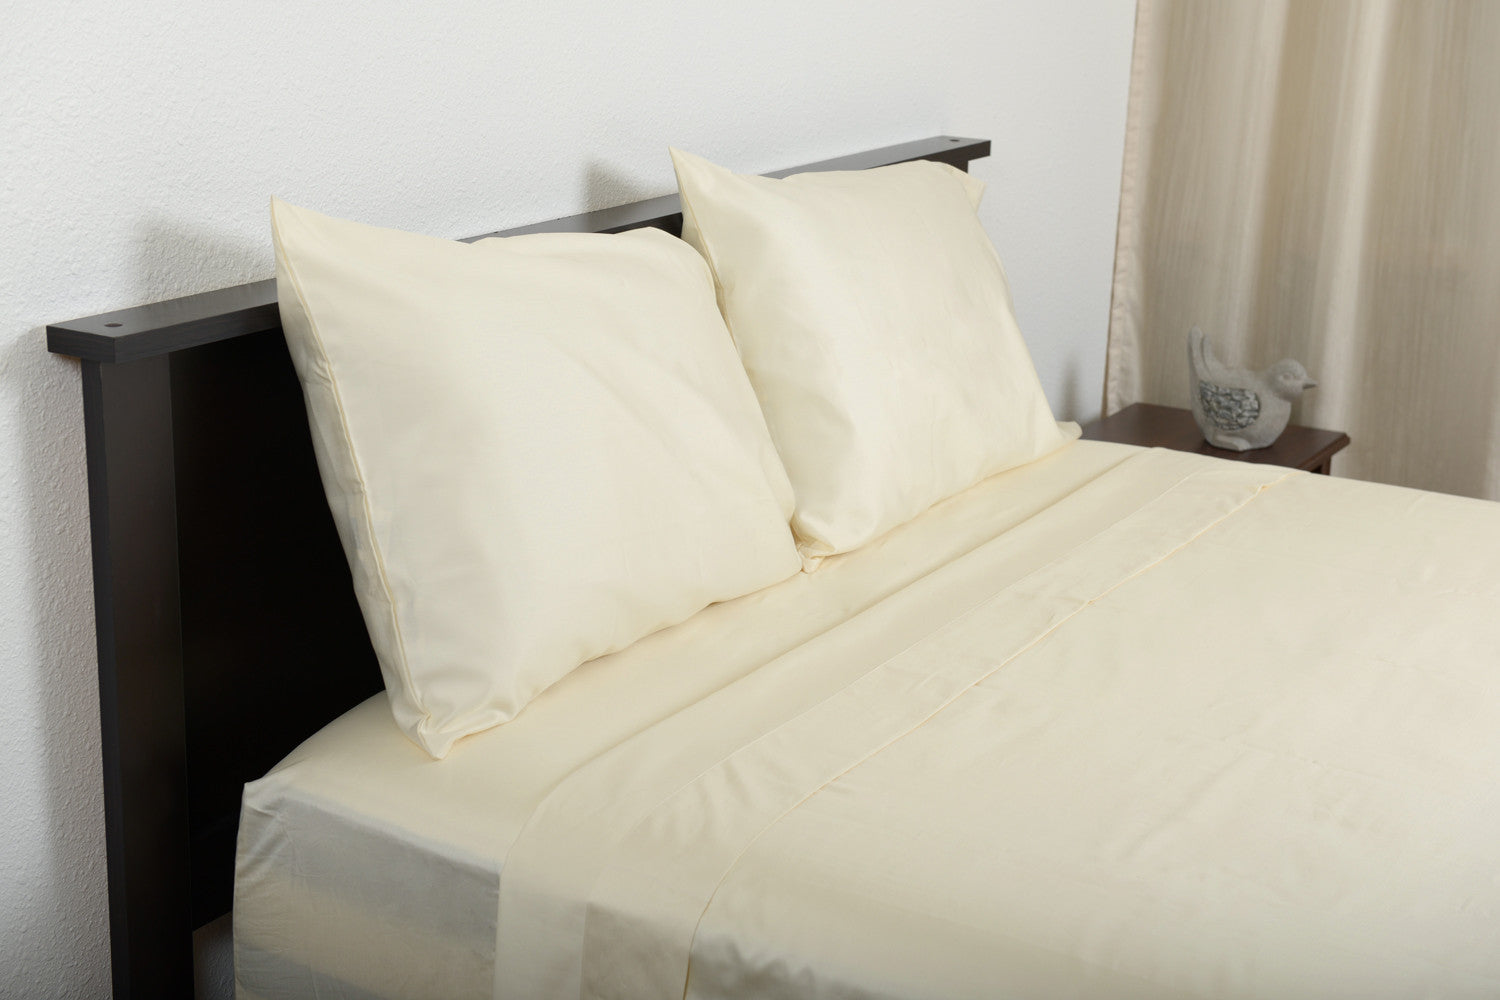 Supreme sateen egyptian cotton sheets ivory top side foot view by excess comfort made in usa of fabric made in israel